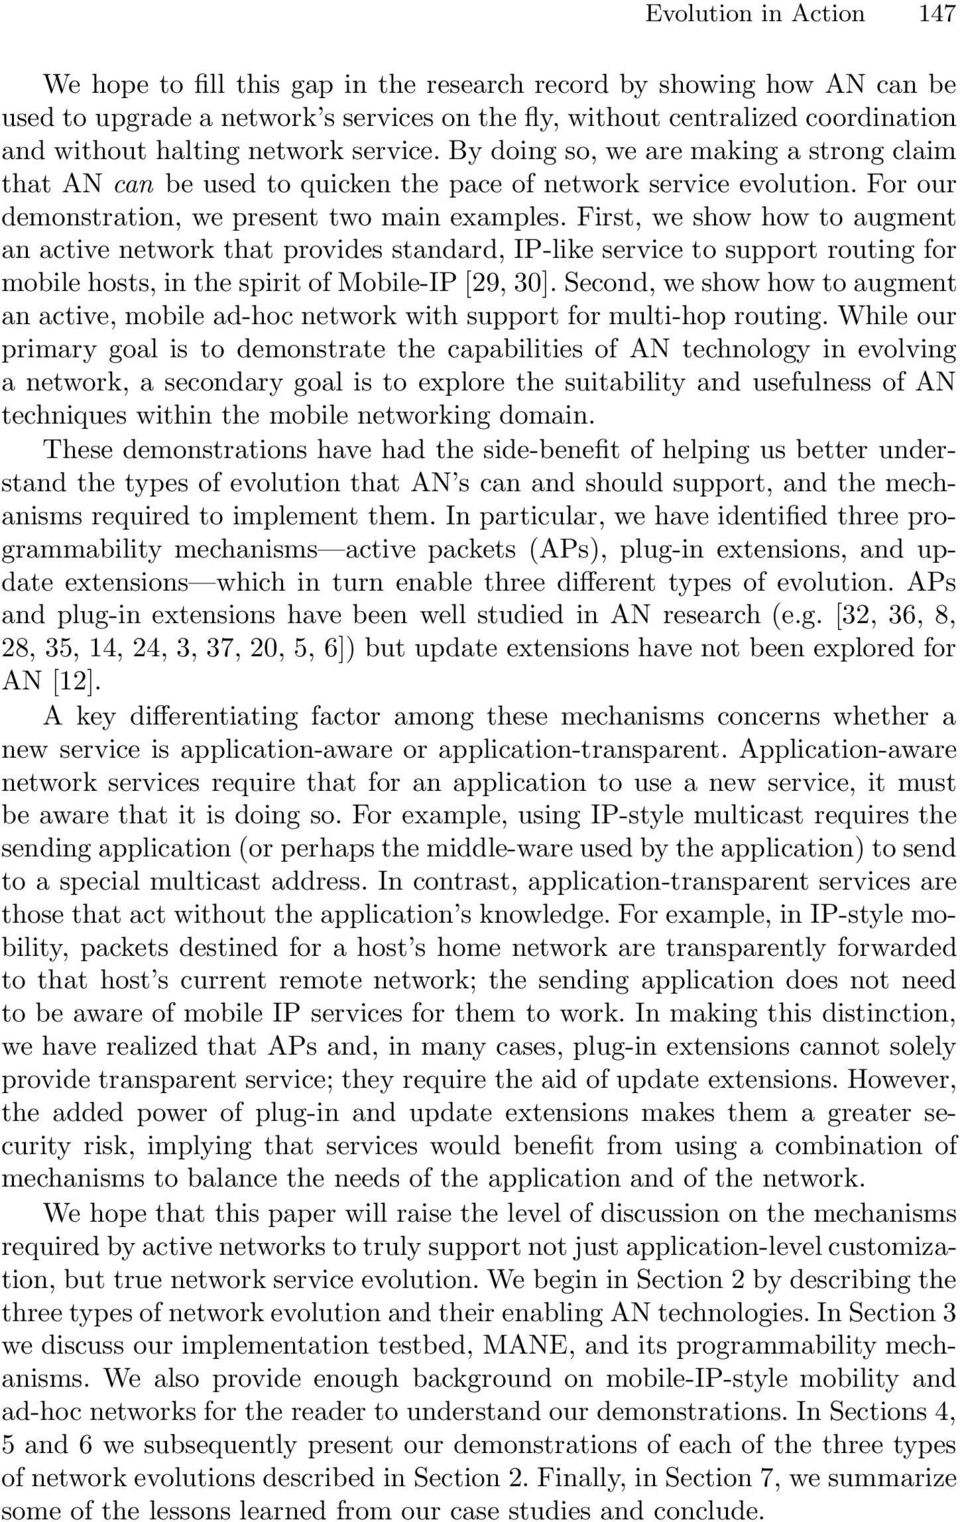 First, we show how to augment an active network that provides standard, IP-like service to support routing for mobile hosts, in the spirit of Mobile-IP [29, 30].